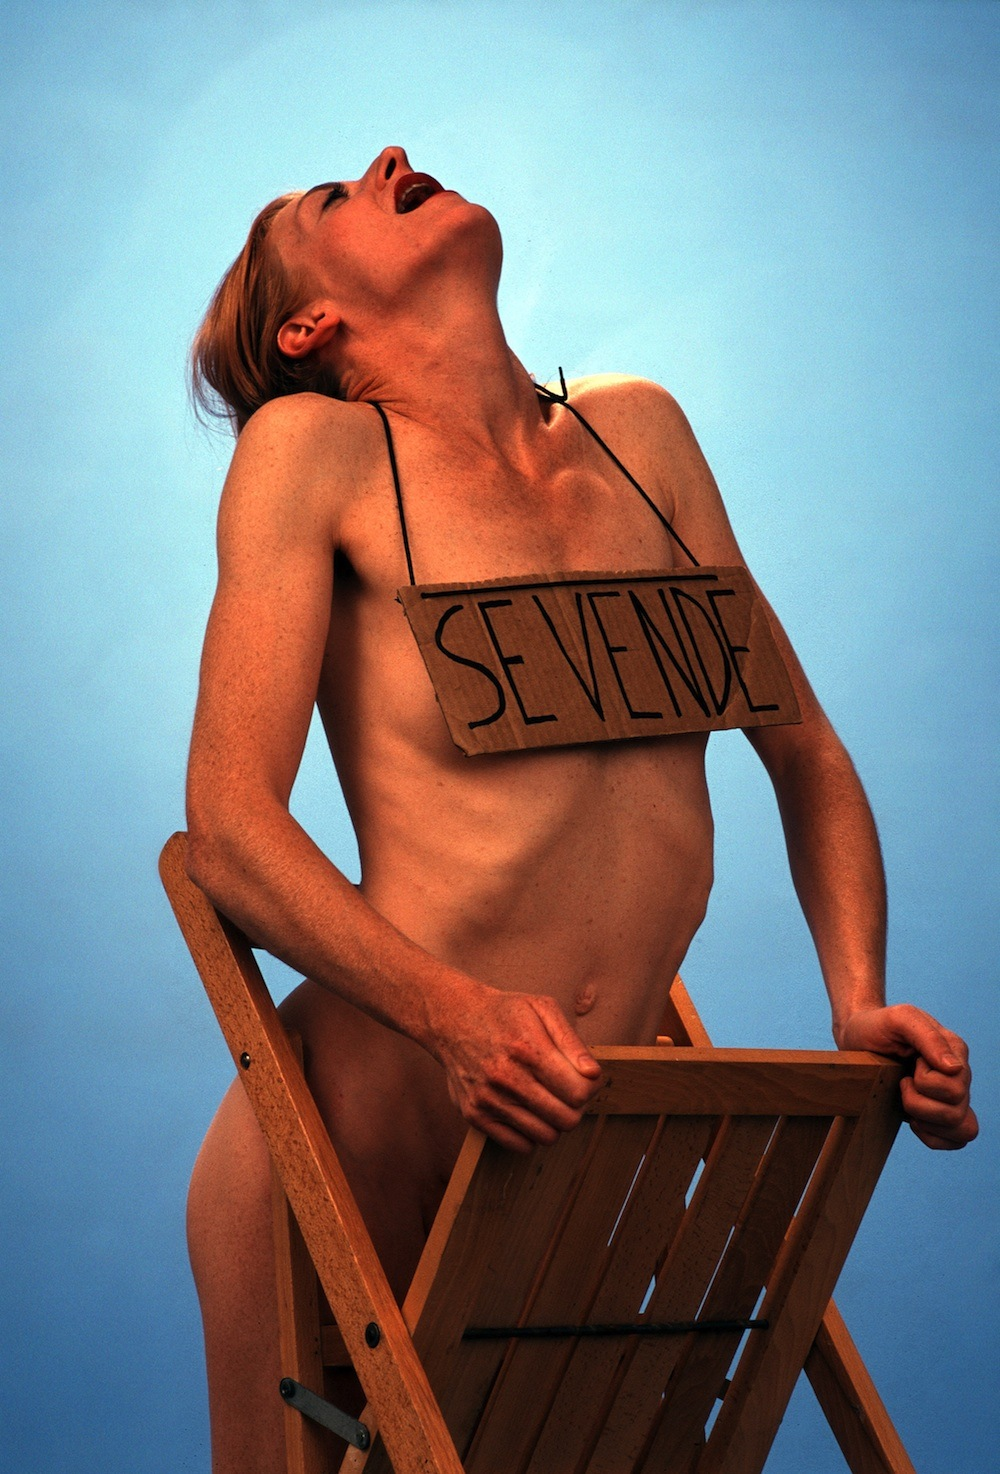 The artist, nude, dances with a chair wearing a sign around her neck that reads 'sevende'.